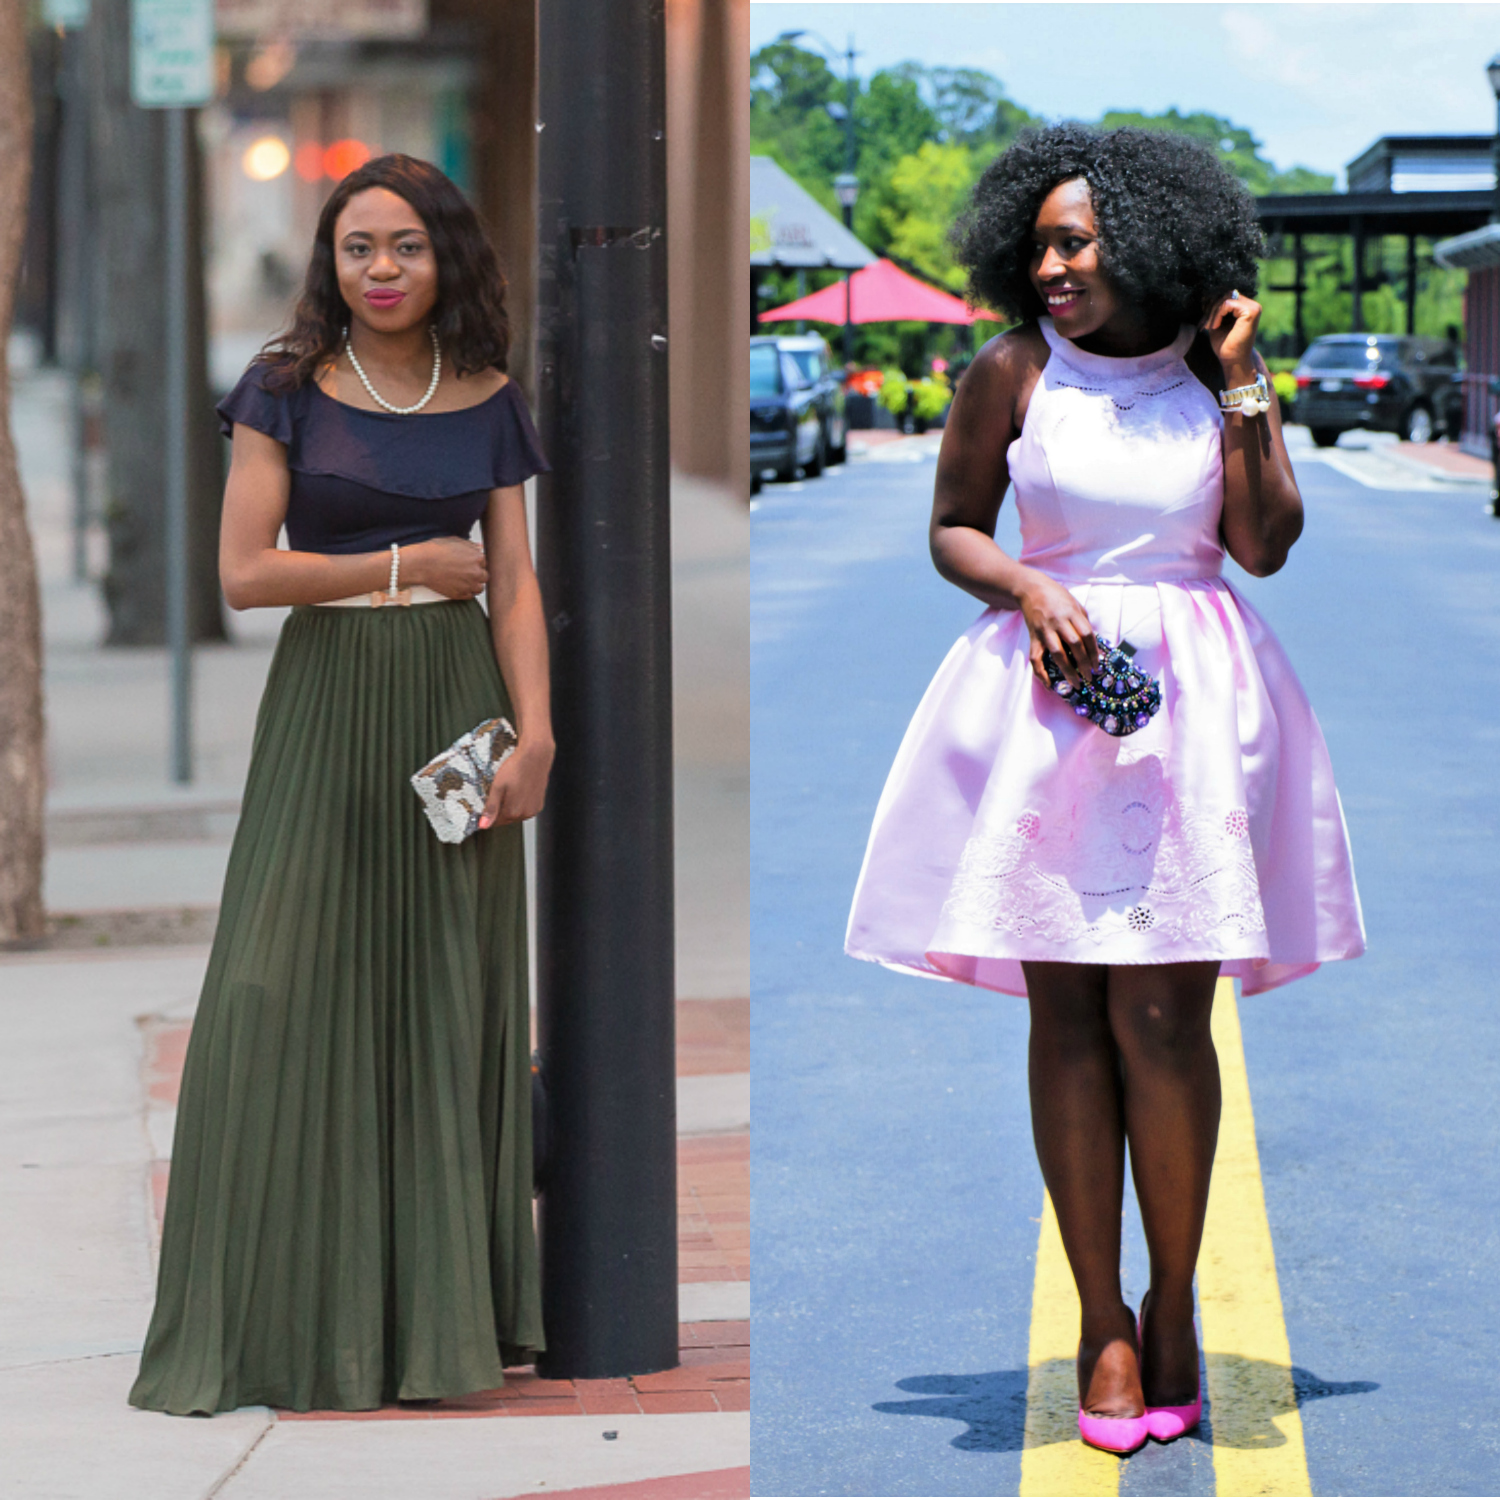 b21cee7eab Two bloggers  take on what to wear as a wedding guest to summer weddings